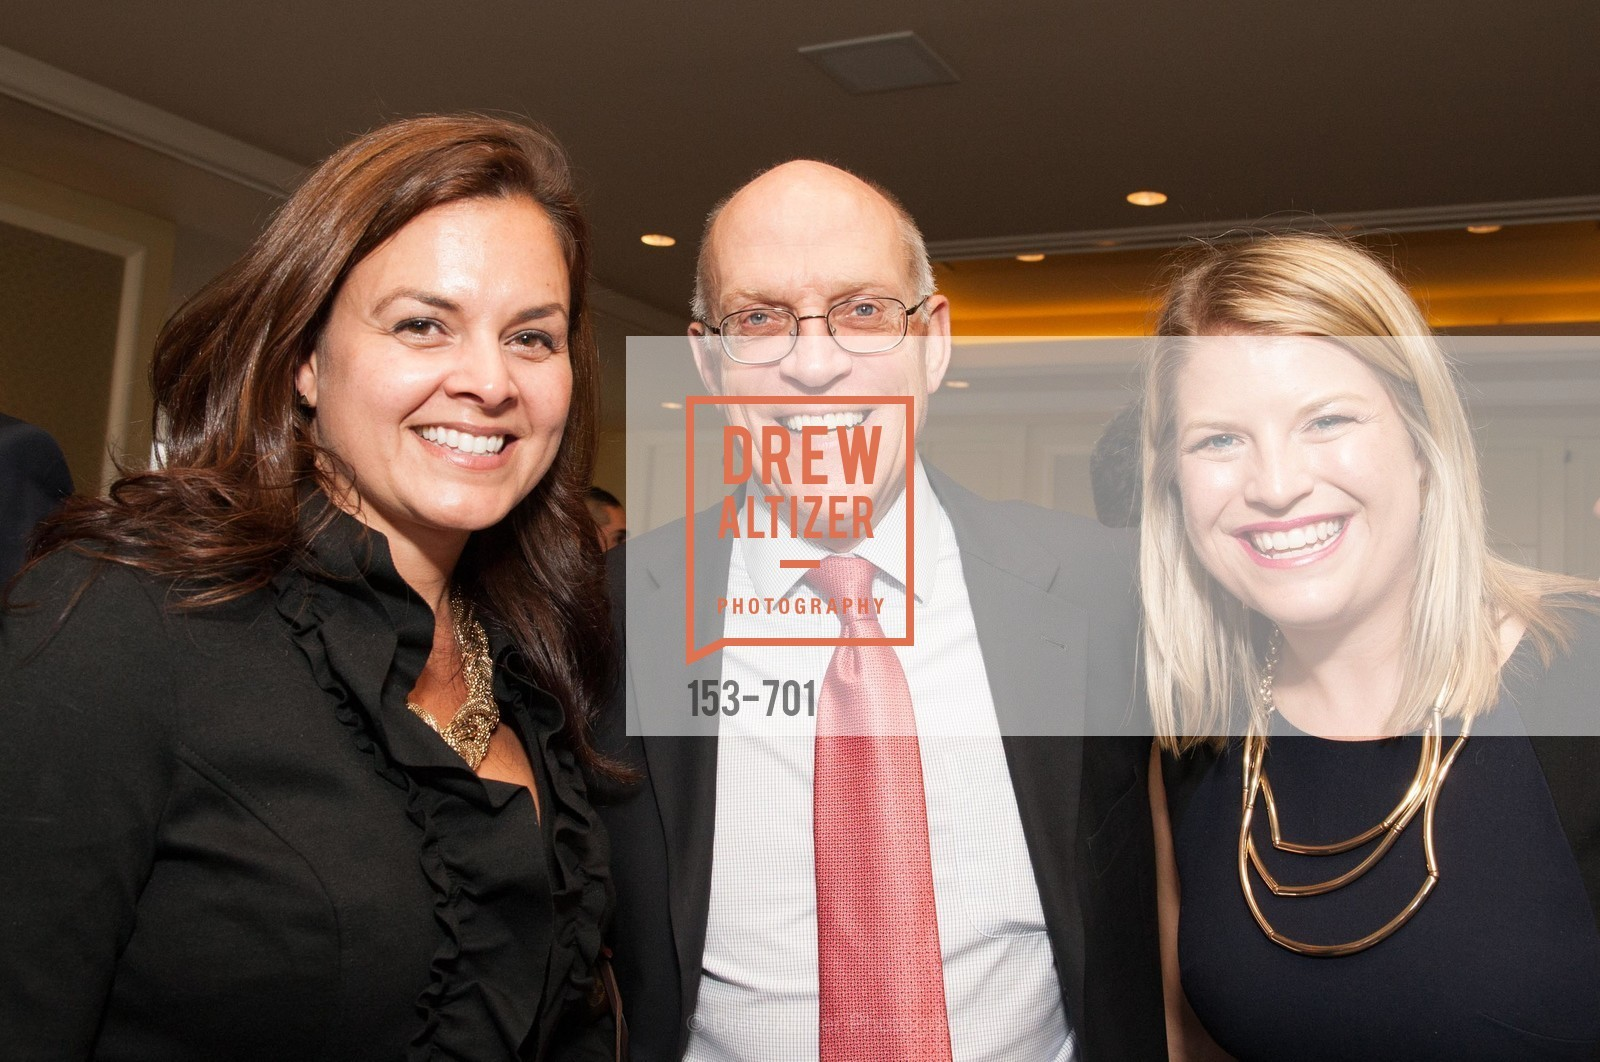 Guadalupe Nickell, Sterling Sperin, Megan Sussman, SUMMER SEARCH San Francisco 25th Anniversary, US, May 6th, 2015,Drew Altizer, Drew Altizer Photography, full-service agency, private events, San Francisco photographer, photographer california